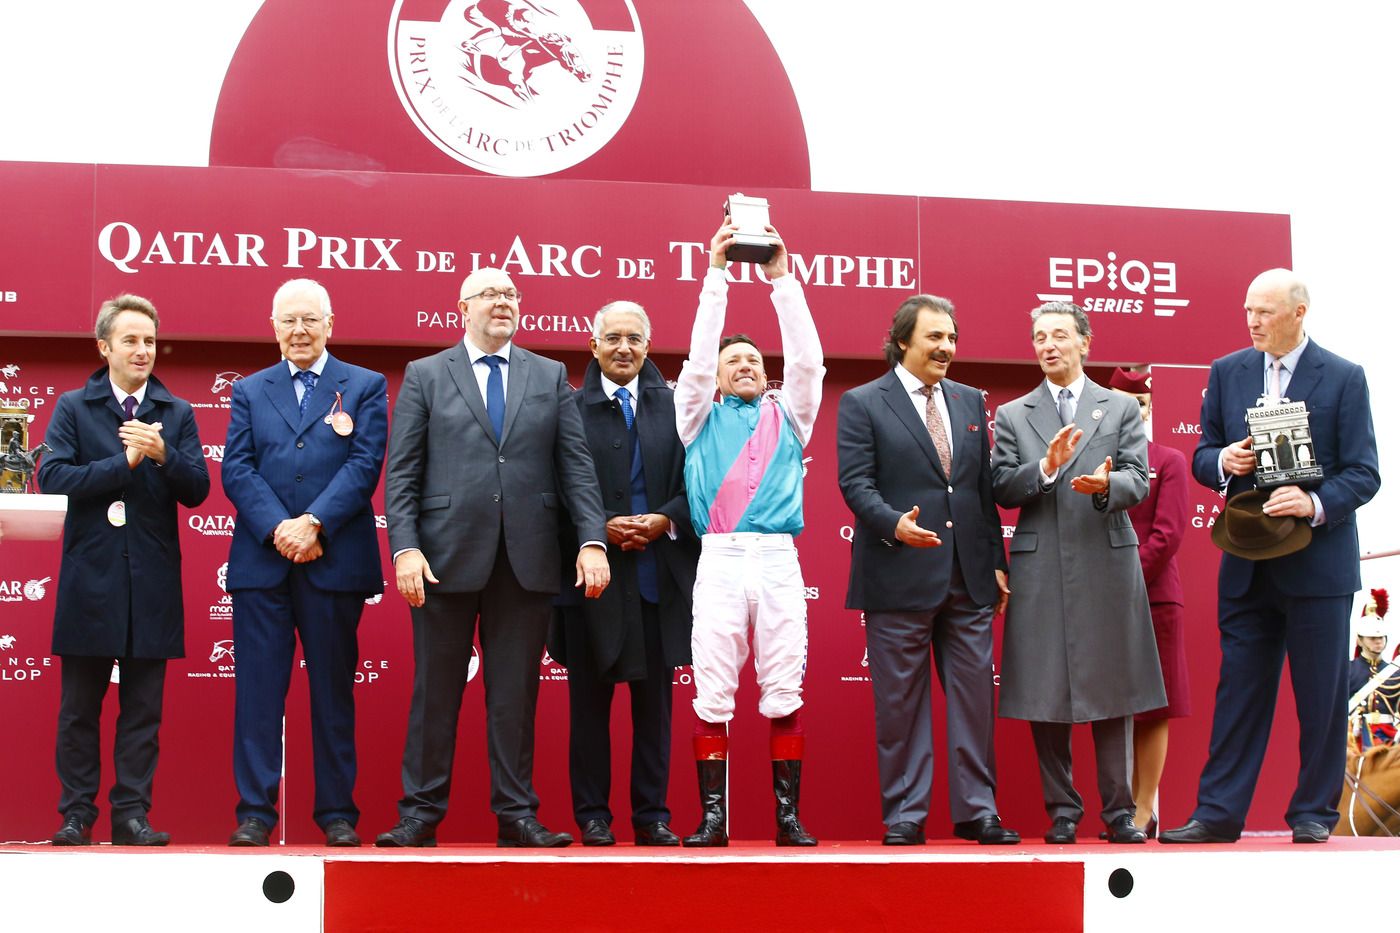 Longines Flat Racing Event: Longines times the Qatar Prix de l'Arc de Triomphe  back at ParisLongchamp 8